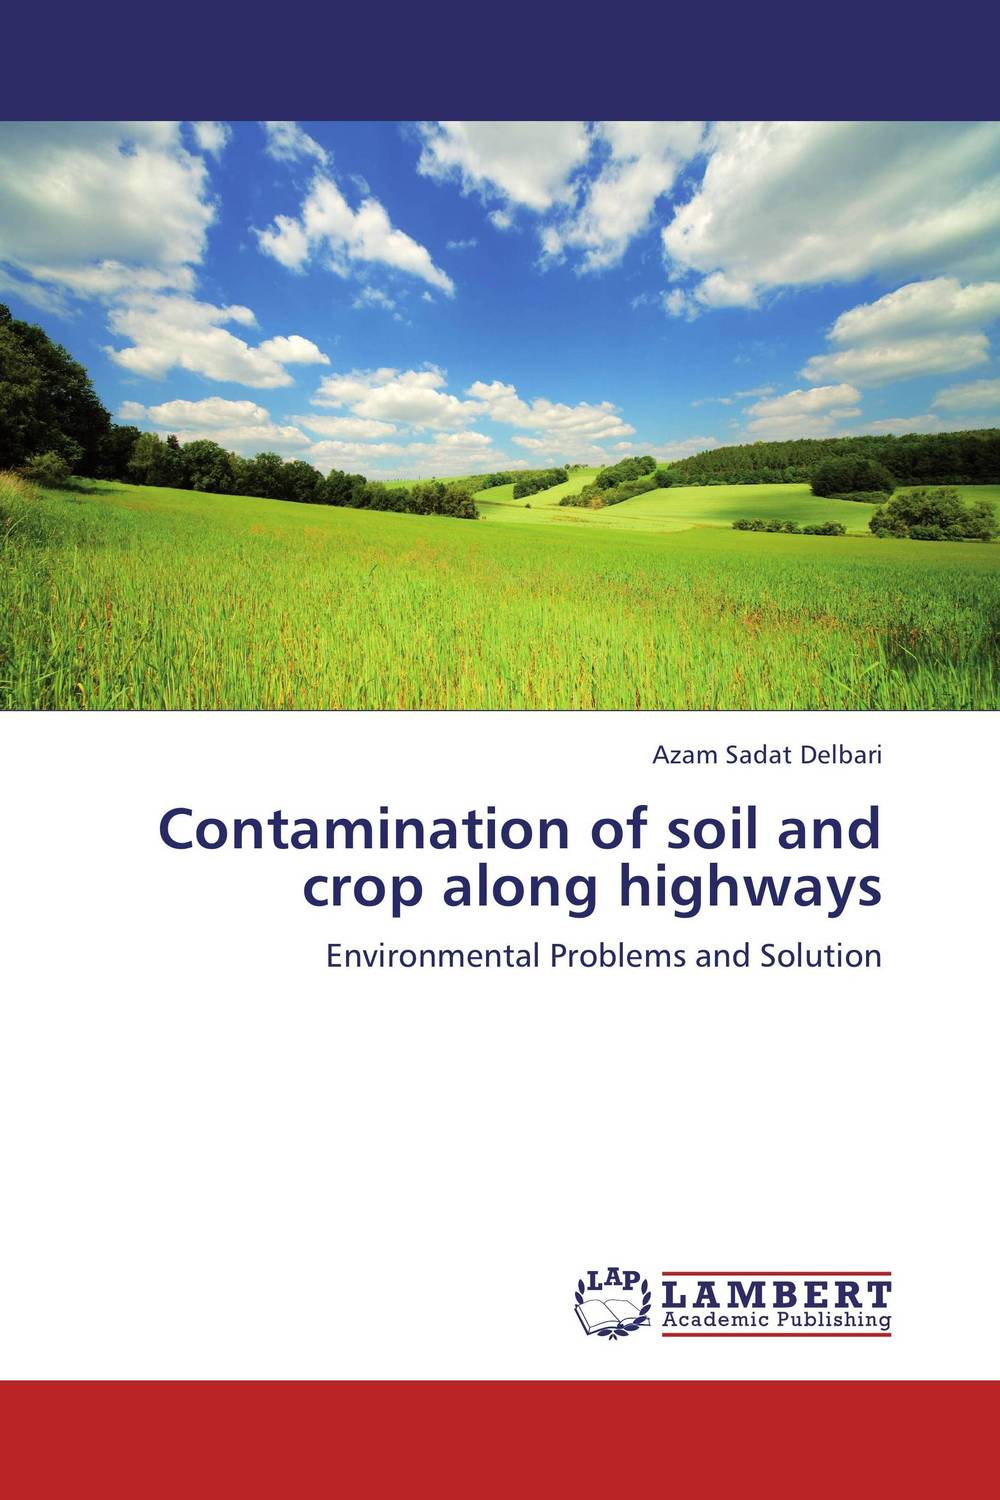 Contamination of soil and crop along highways gaurav kumar singh response of plants to cadmium toxicity